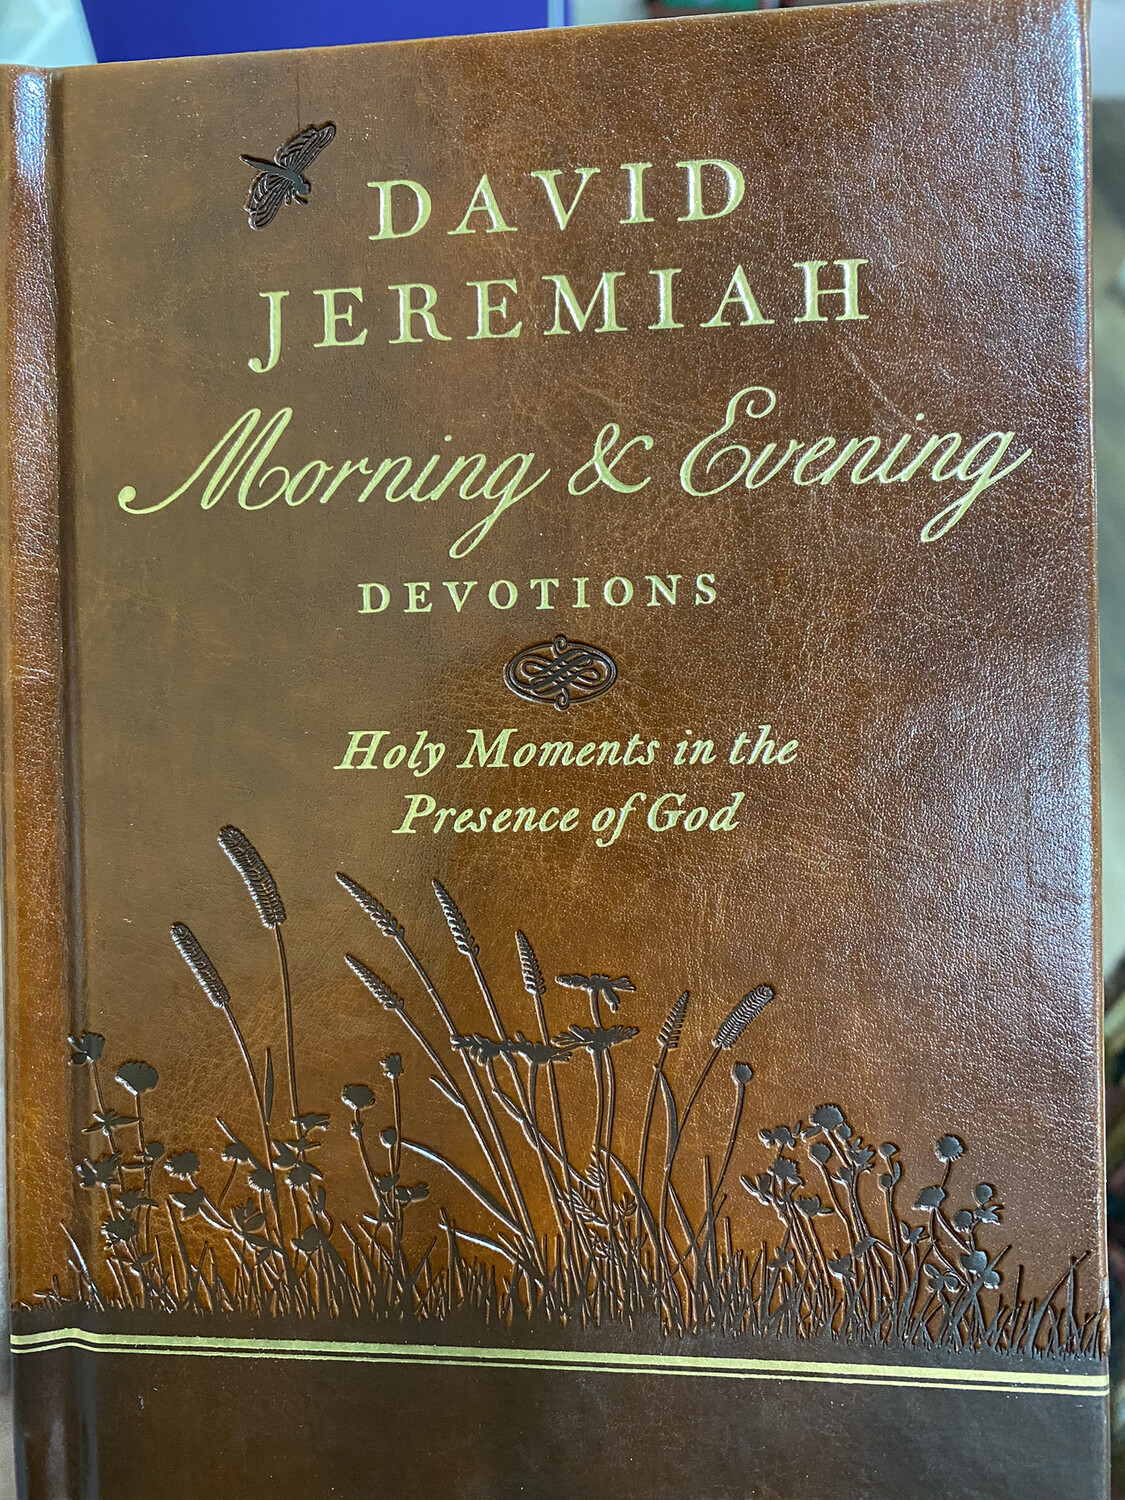 JEREMIAH, Holy Moments In The Presence Of God, Morning & Evening